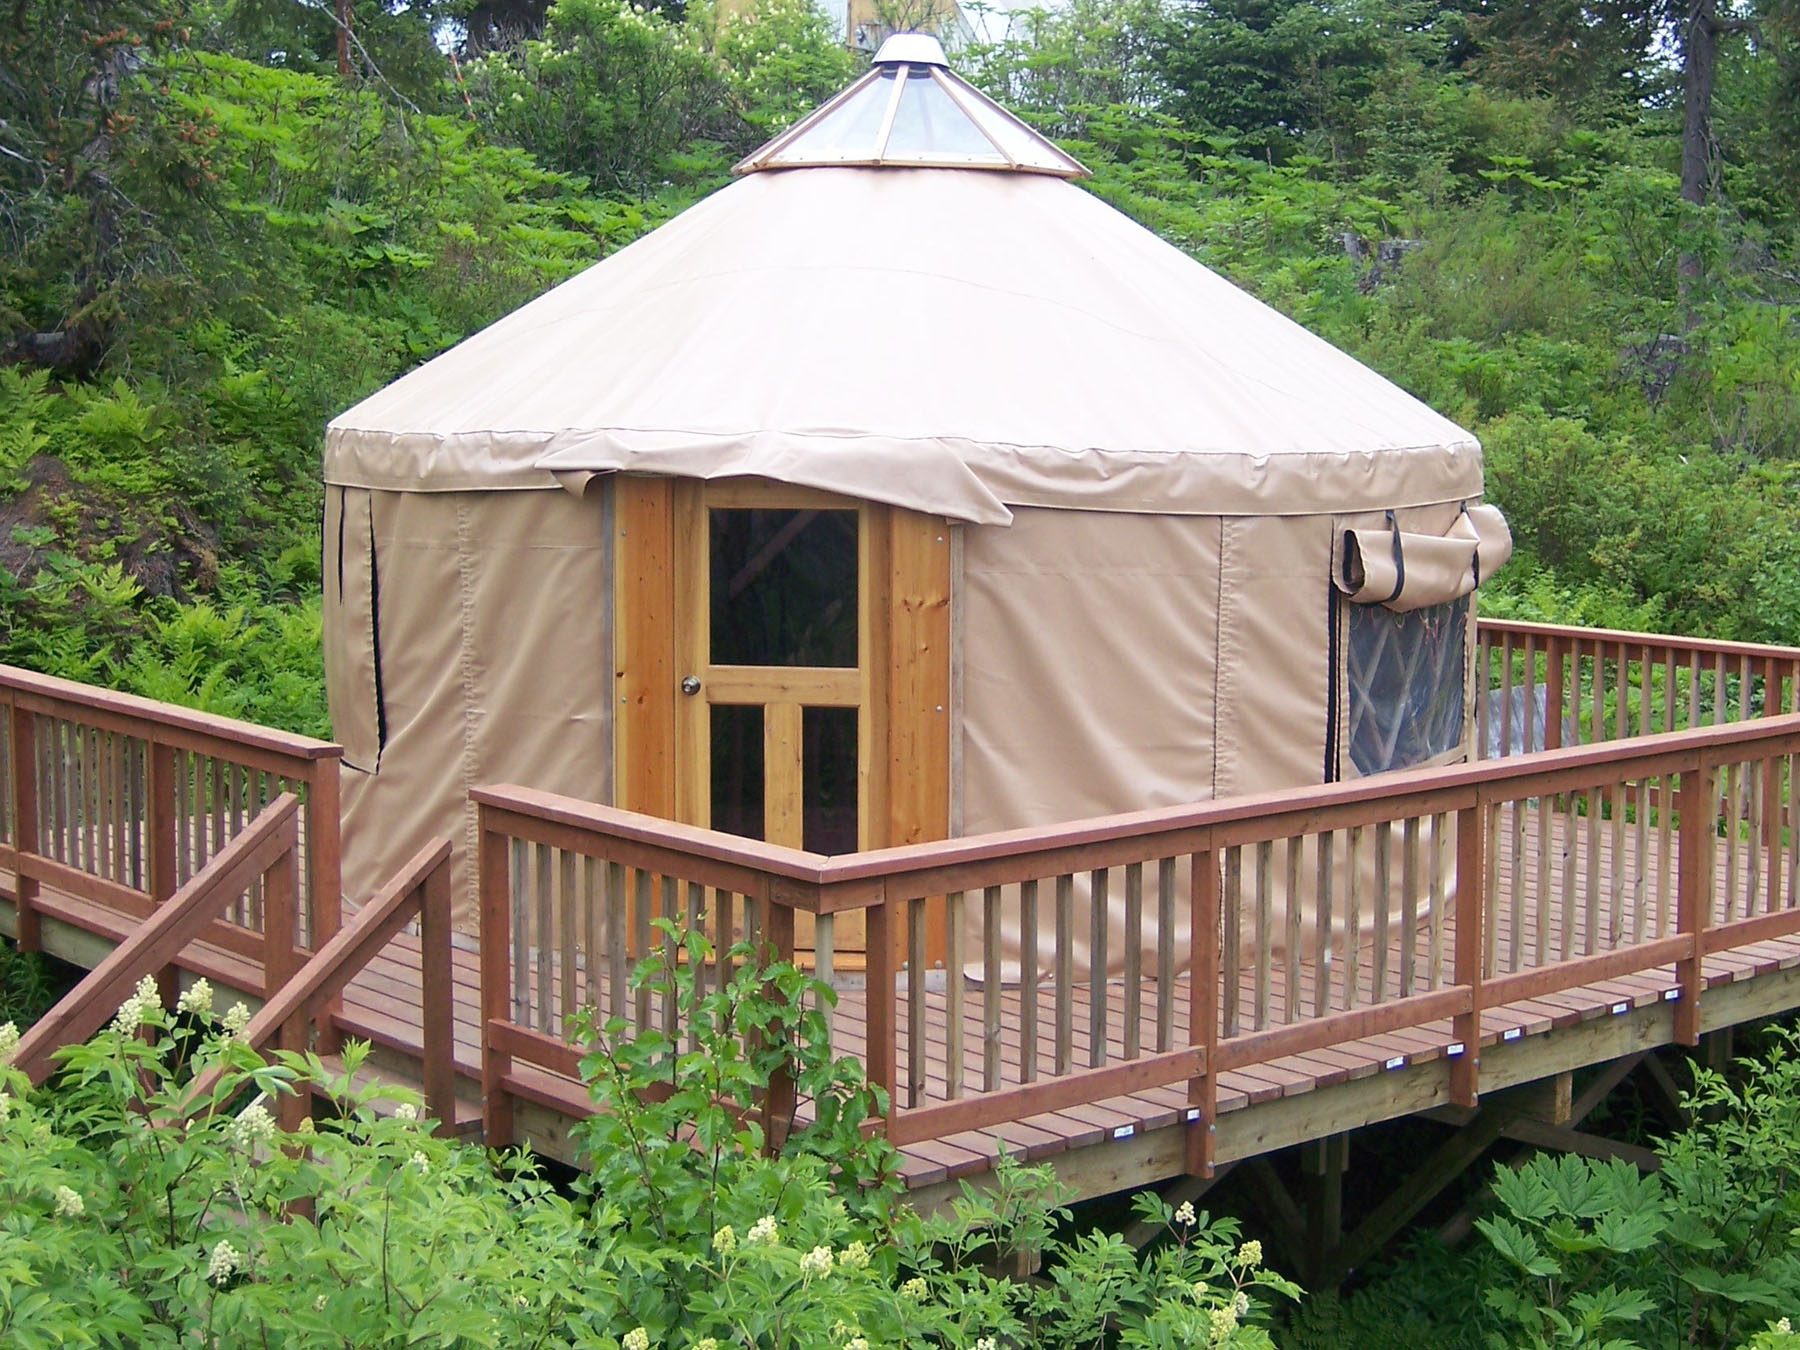 Peterson Bay Field Station Yurt, Homer1.